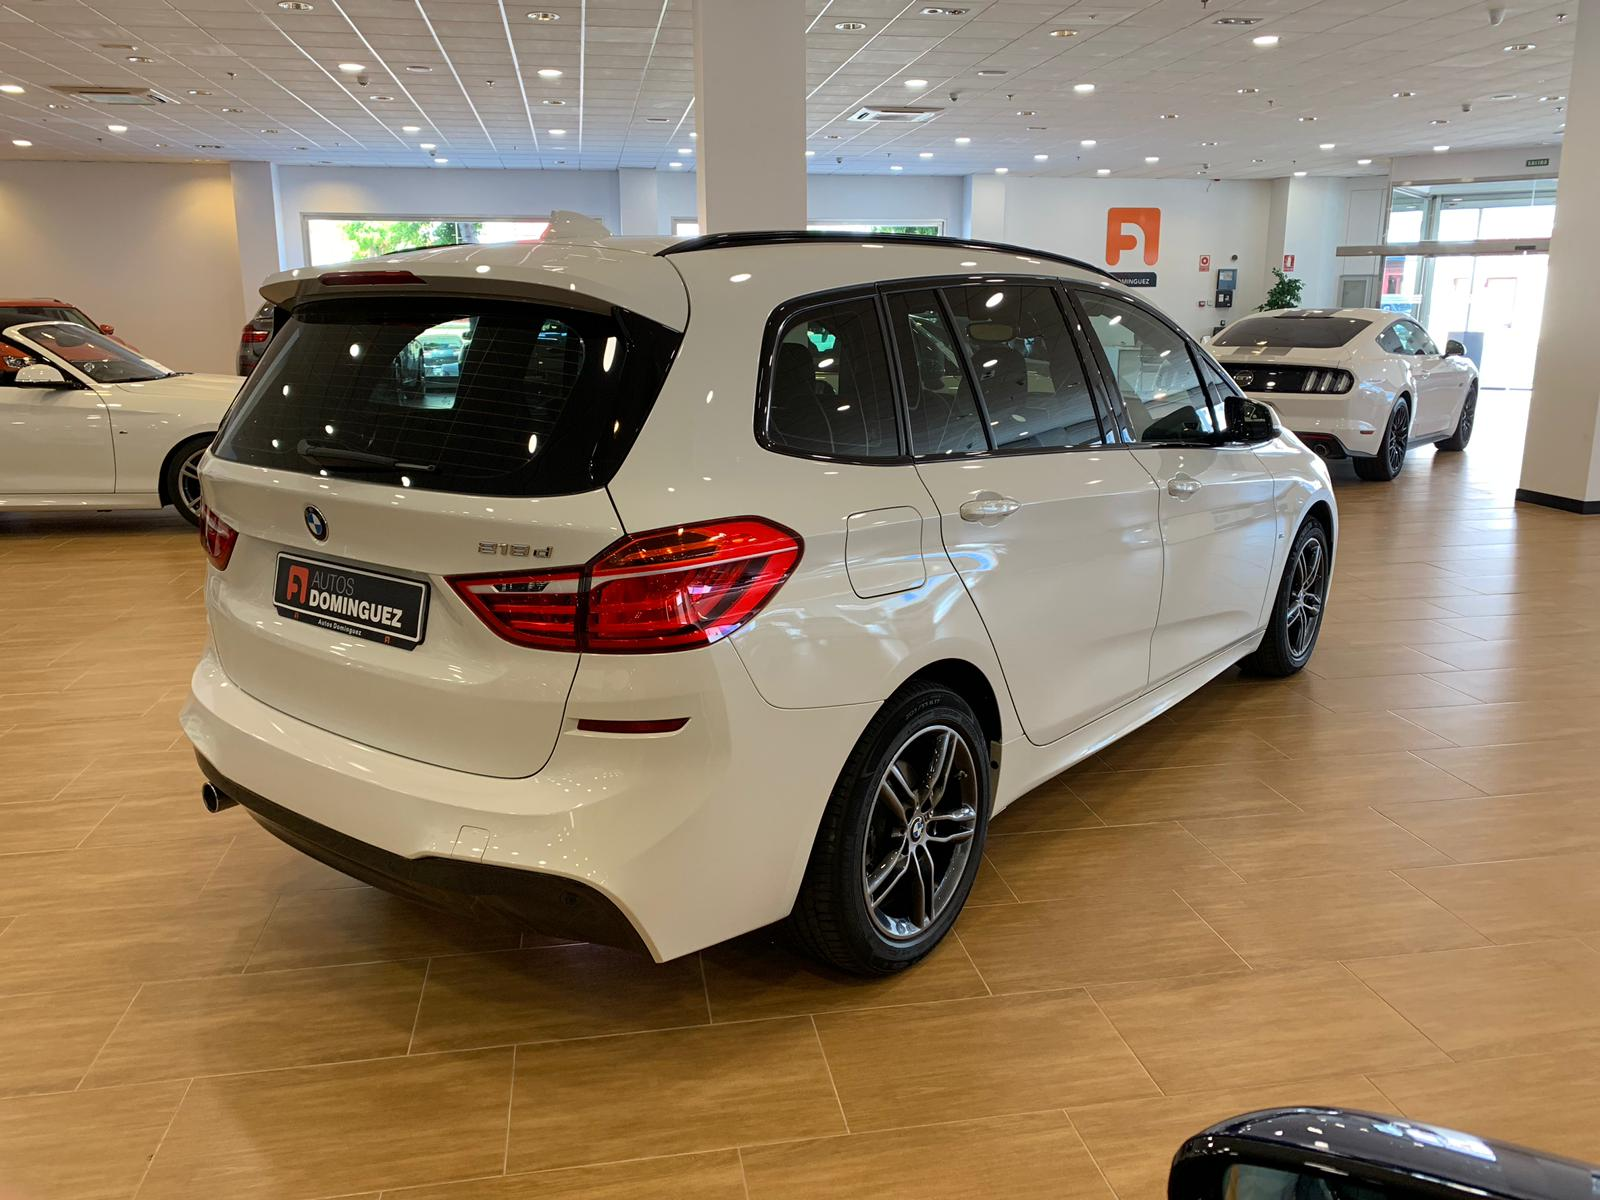 BMW SERIE 2 218dA 150 CV GRAN TOURER M 7 PLAZAS IVA DEDUCIBLE